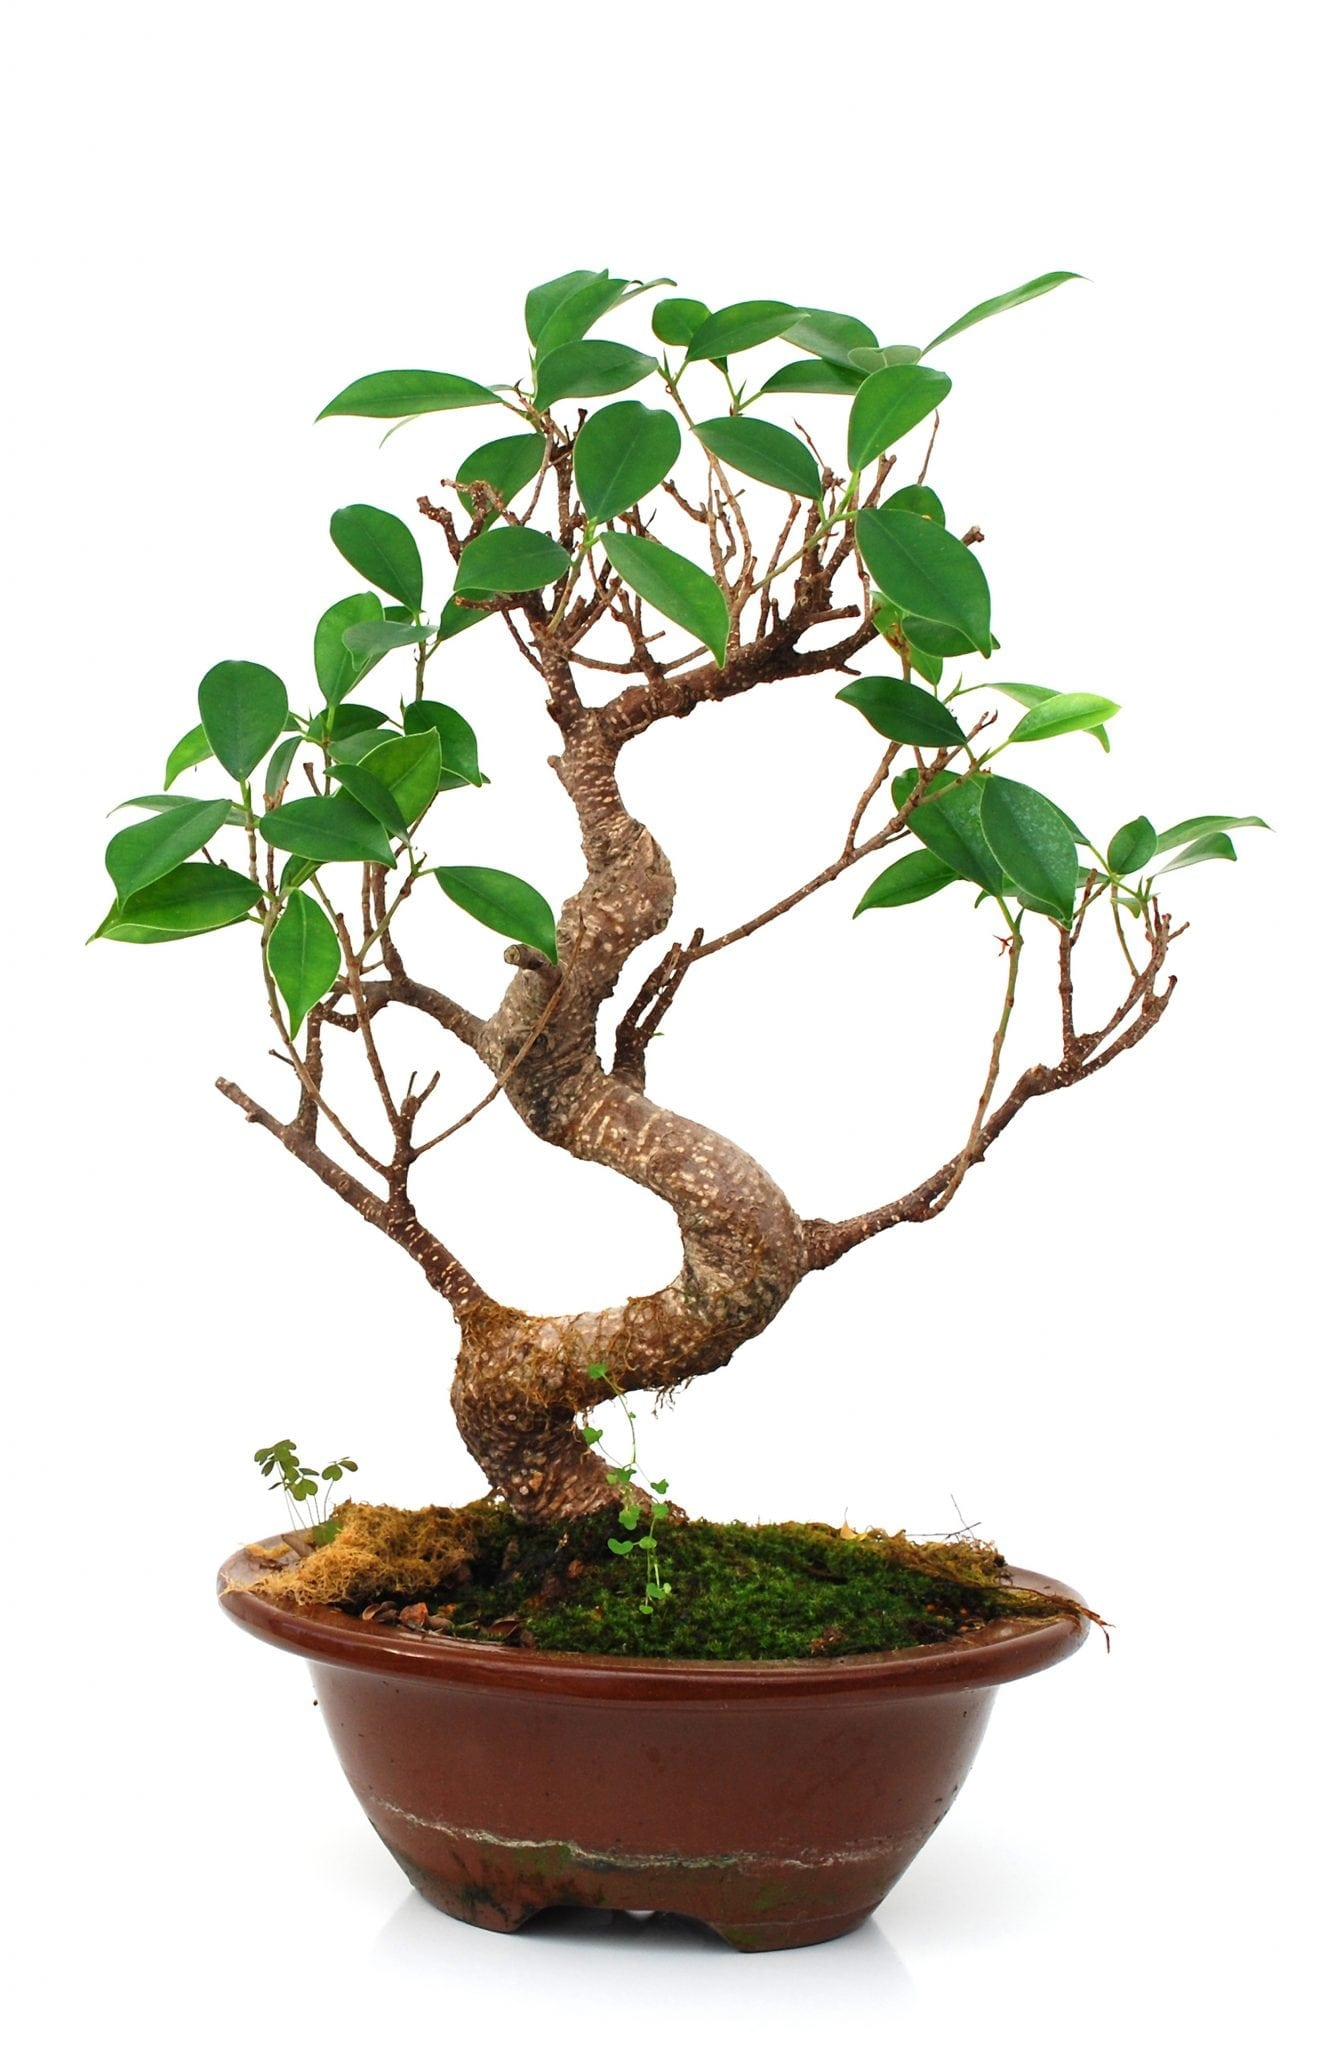 How To Grow Bonsai Trees From Cuttings Bonsai Tree Gardener